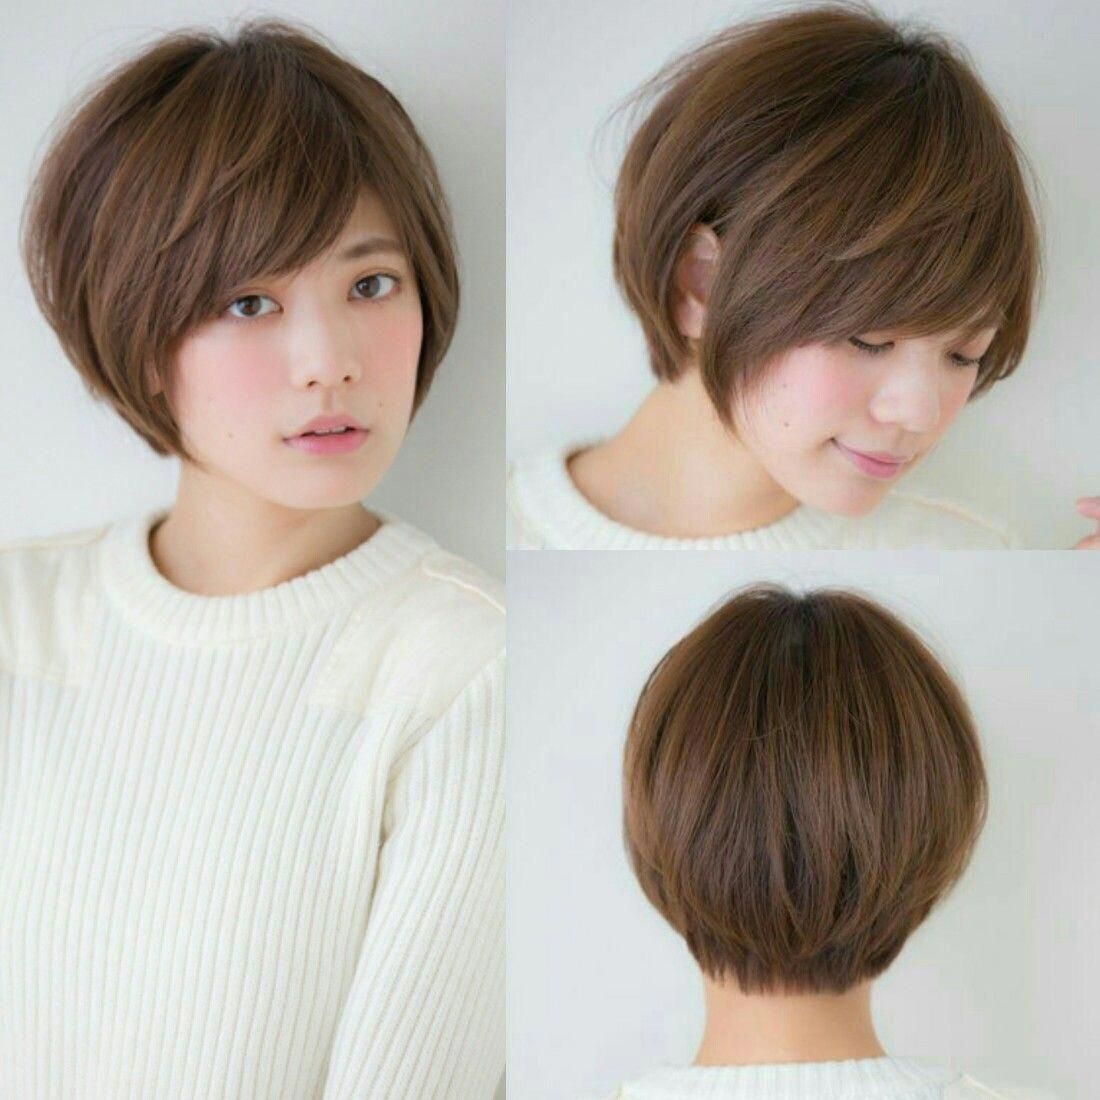 25 Chin Length Bob Hairstyles That Will Stun You in 2019 | Japanese haircut, Japanese short hair ...